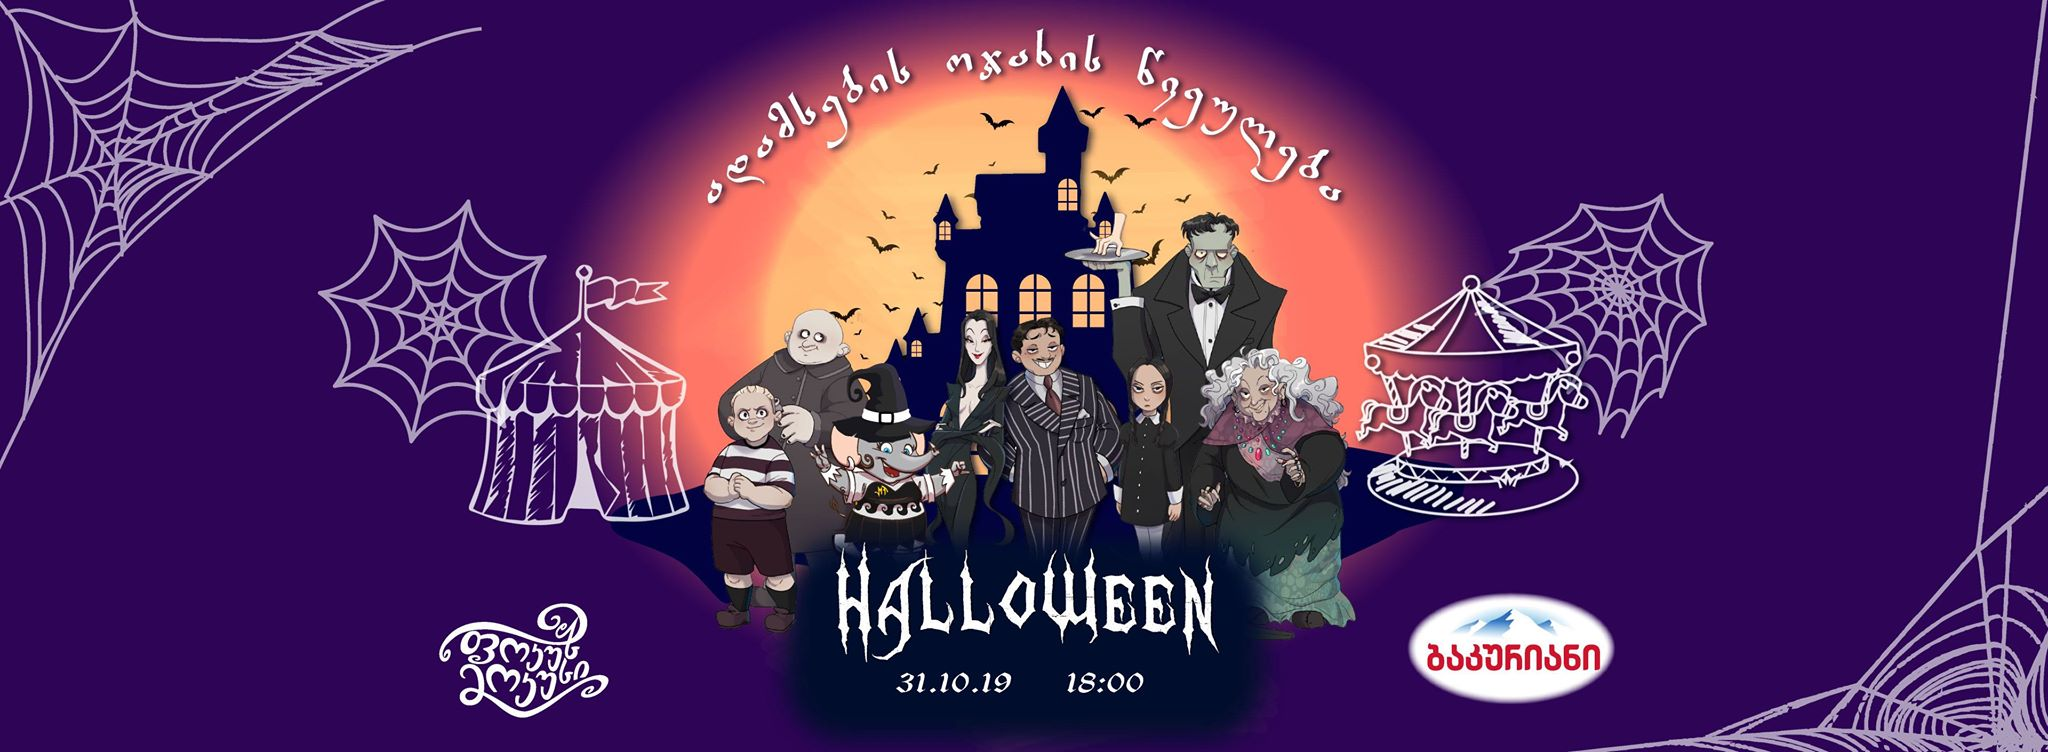 Halloween with Addams Family at Focus Mokus photo